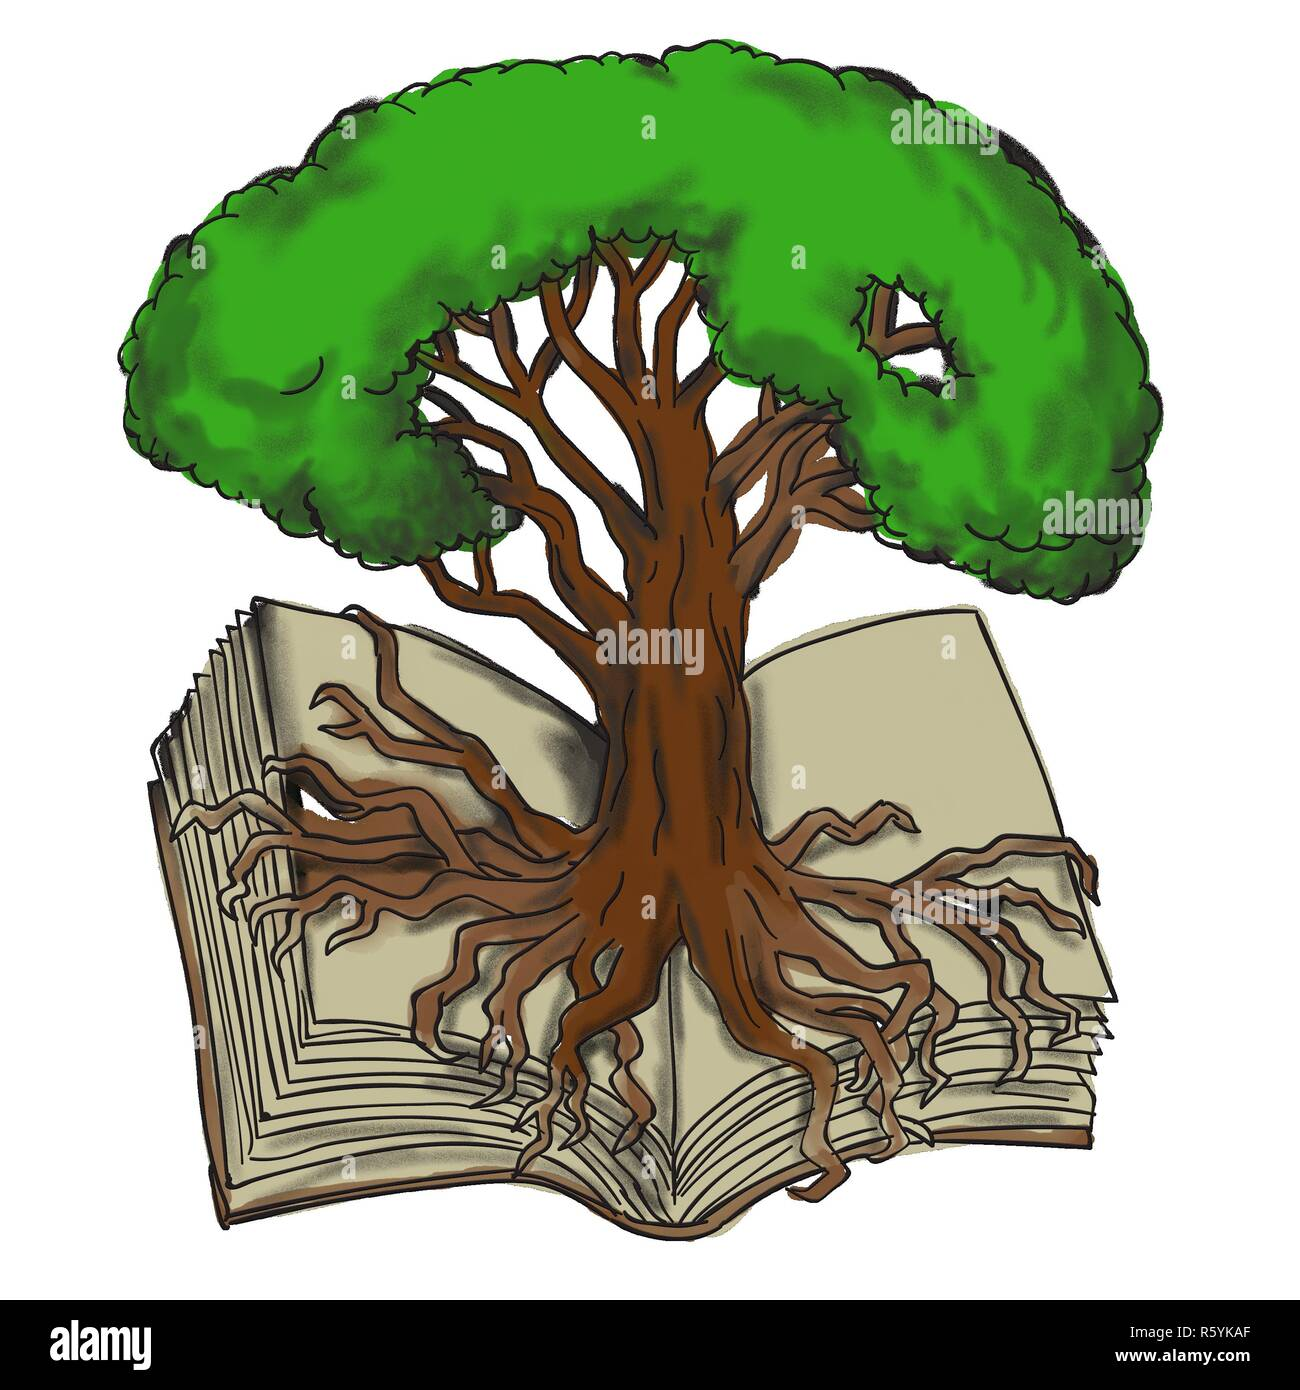 Tree Drawing With Roots High Resolution Stock Photography And Images Alamy Wild plants with roots isolated on white. https www alamy com oak tree roots on book tattoo image227415959 html